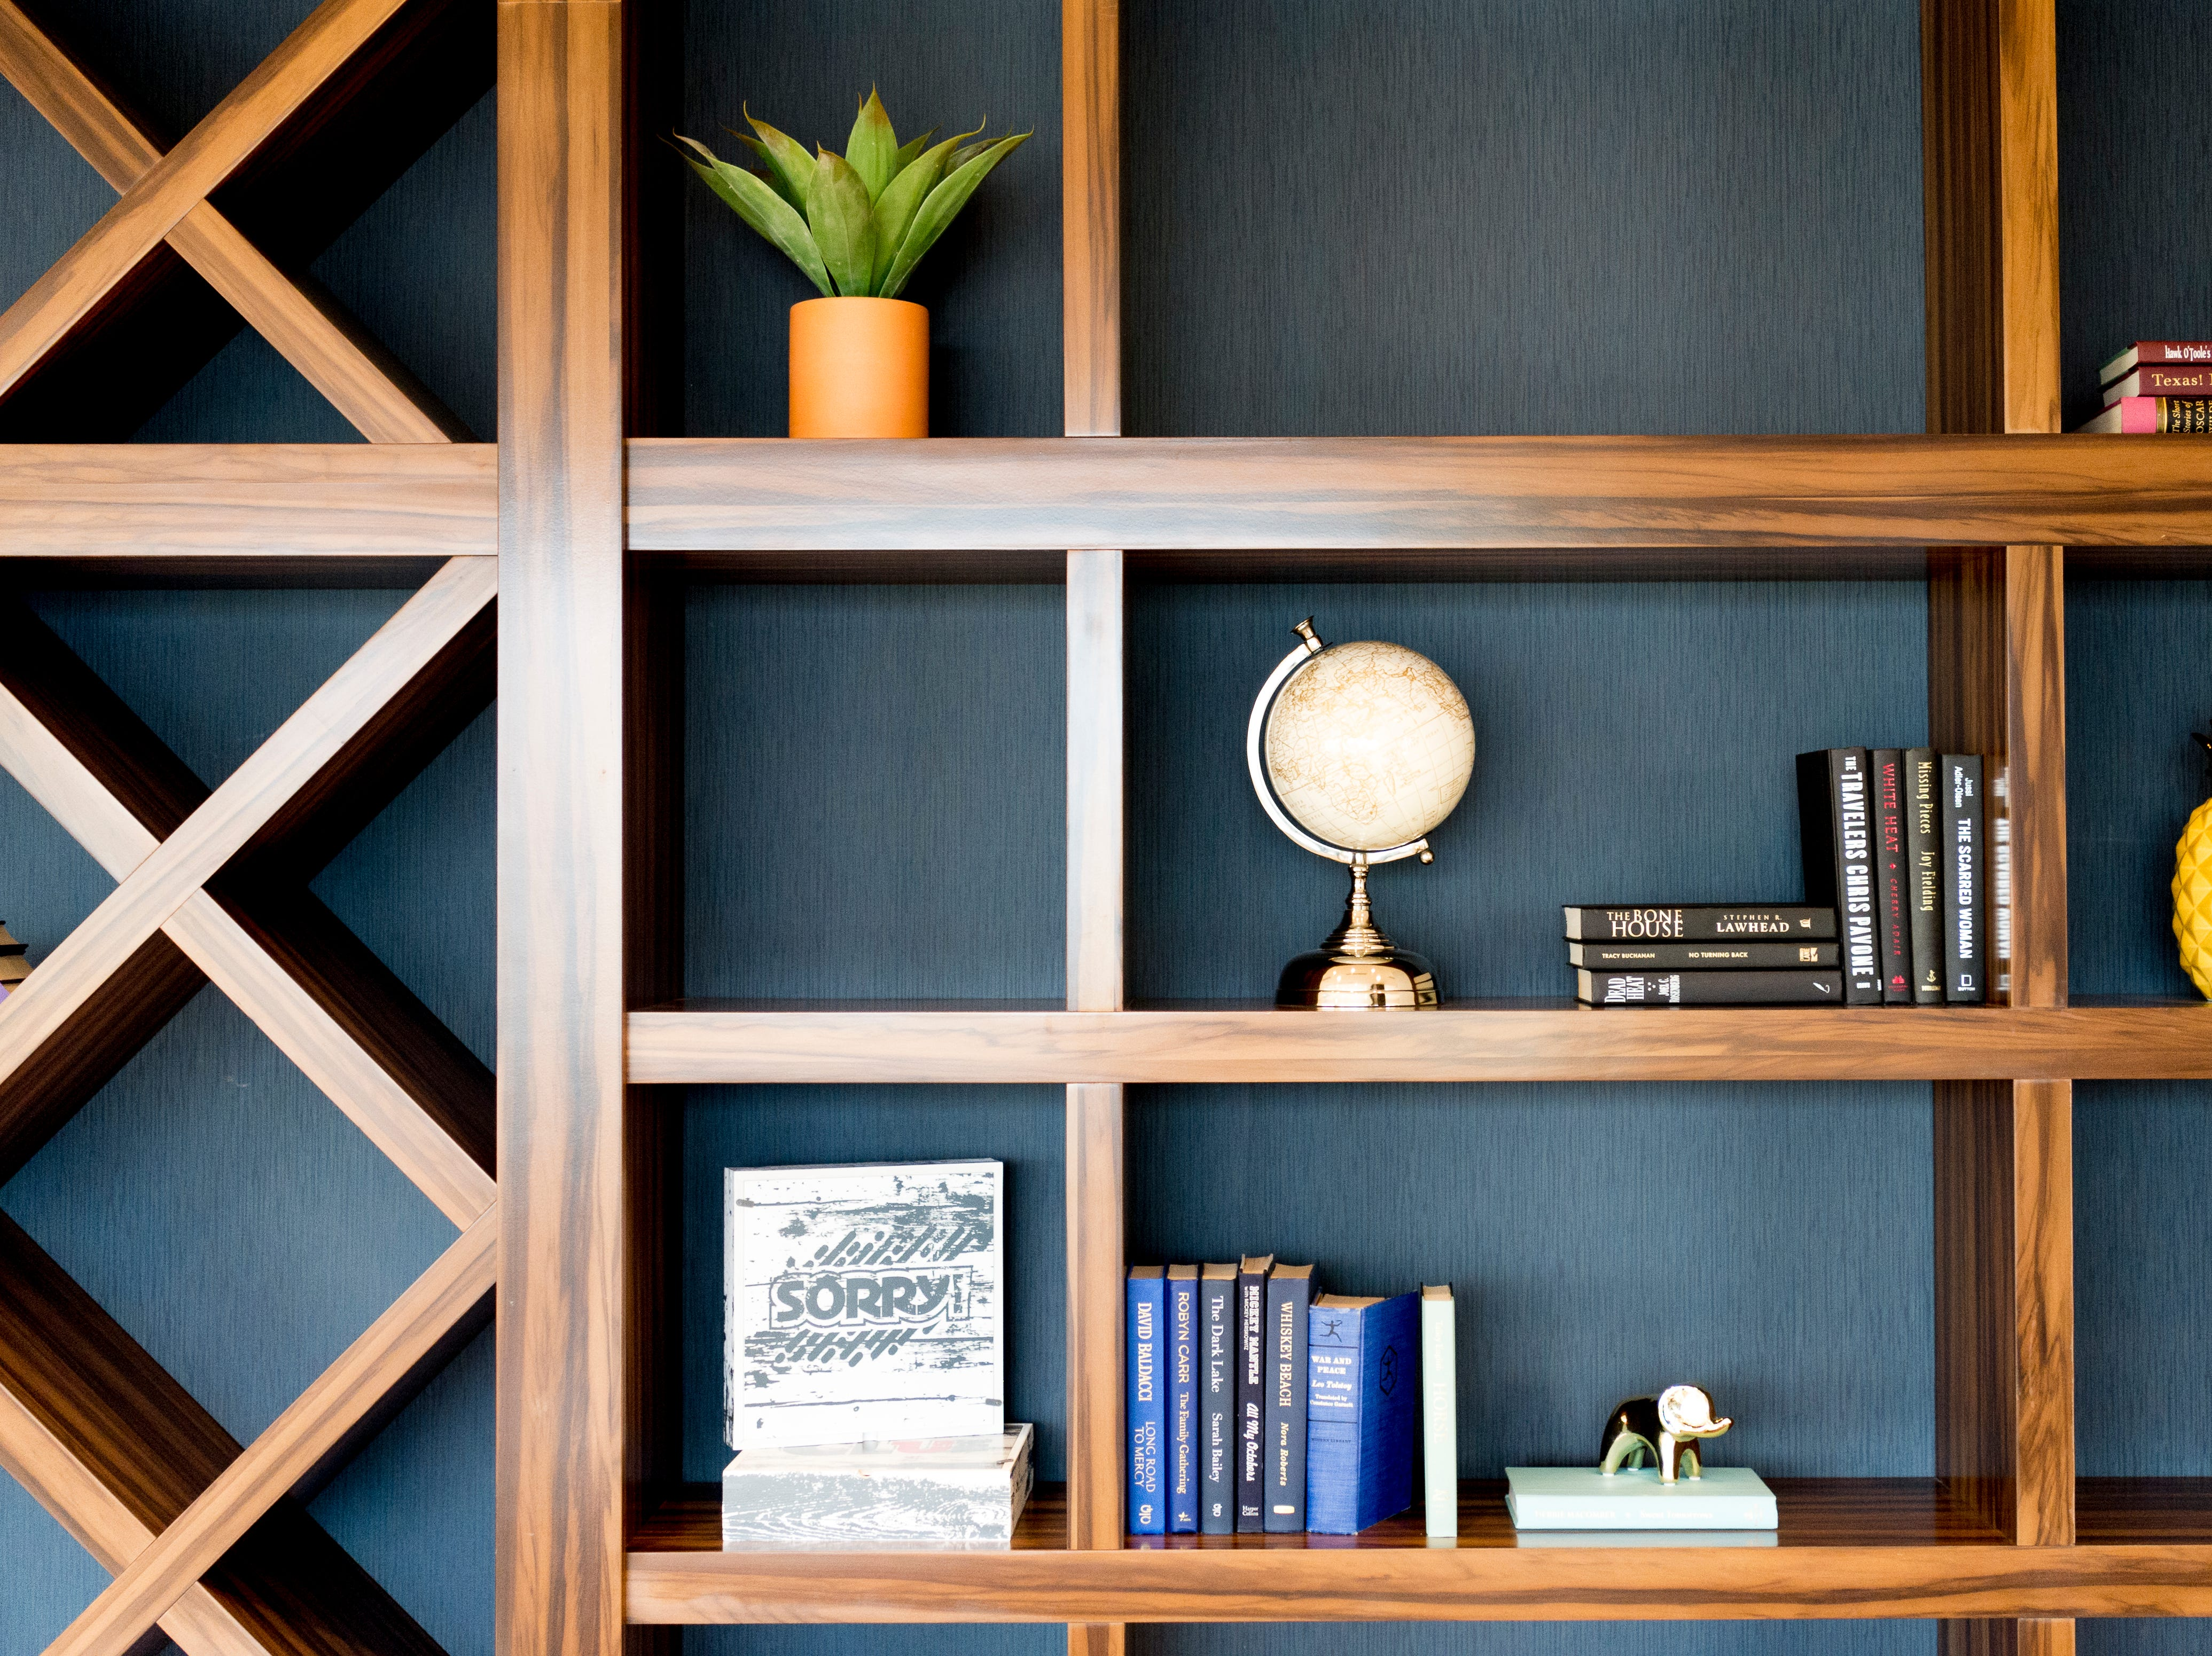 A bookshelf inside the Residence Bistro inside the new Courtyard and Residence Inn by Marriott at 210 Church Ave. in Knoxville, Tennessee on Monday, March 25, 2019. The hotel is the first of its kind in Knoxville to offer two different tiers of hospitality within the same building.